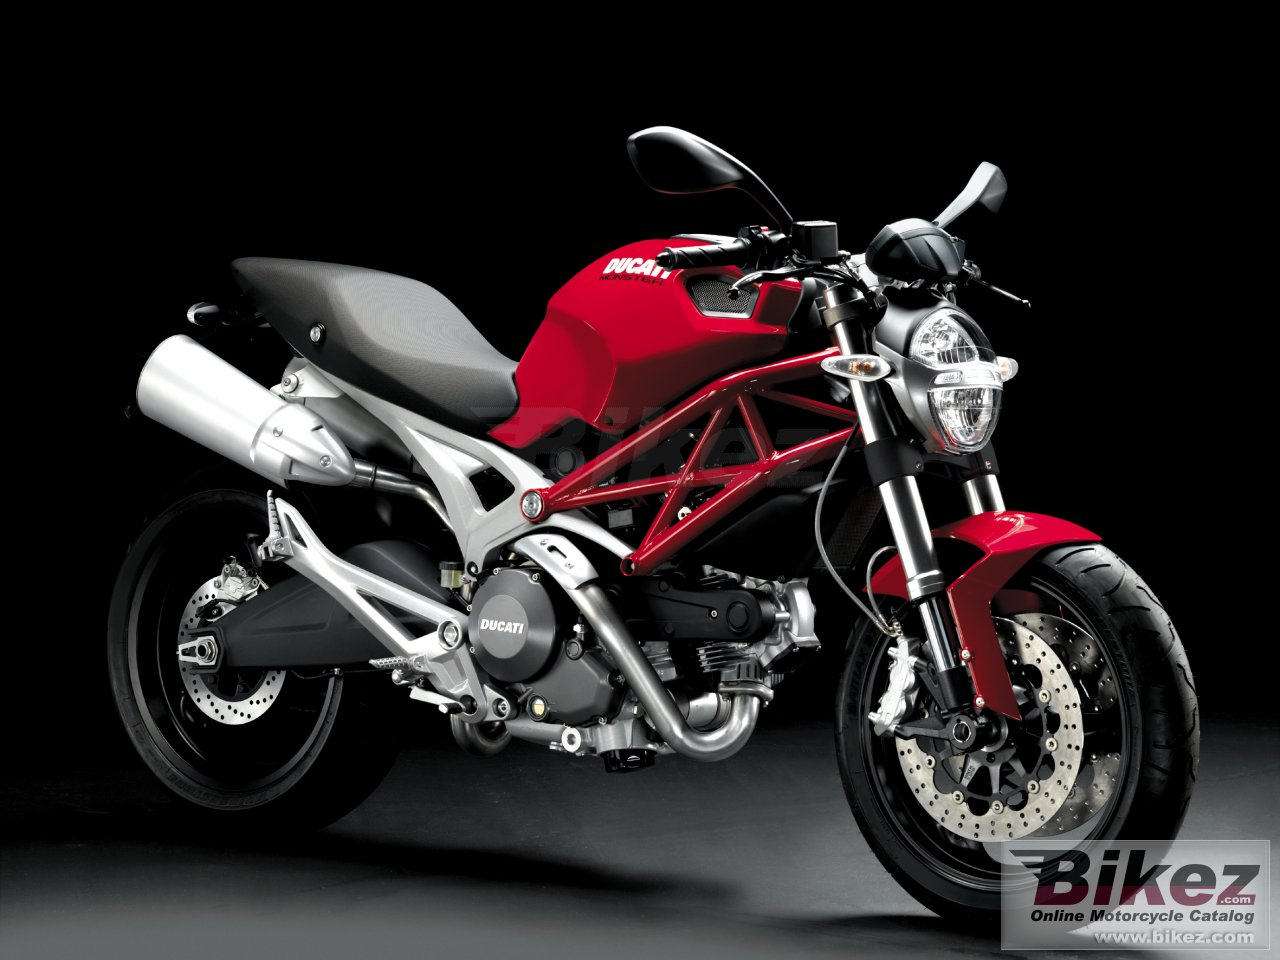 Big Ducati monster 696 picture and wallpaper from Bikez.com